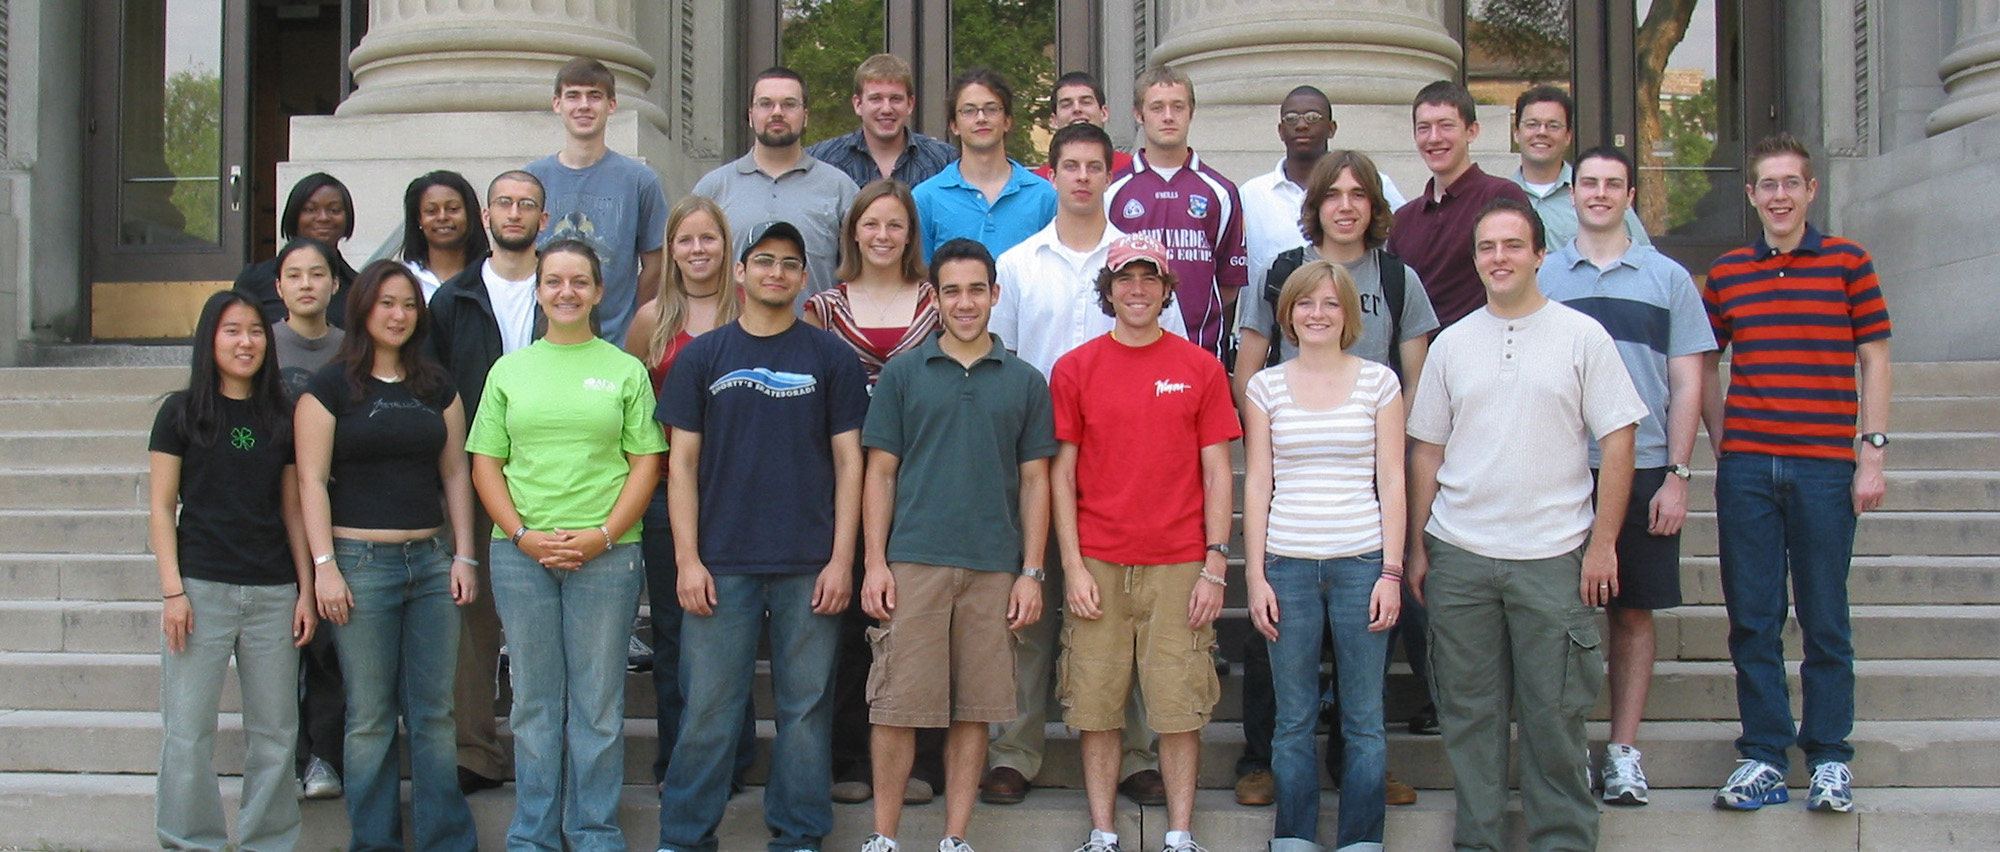 2006 Research Experience for Undergraduates Participants